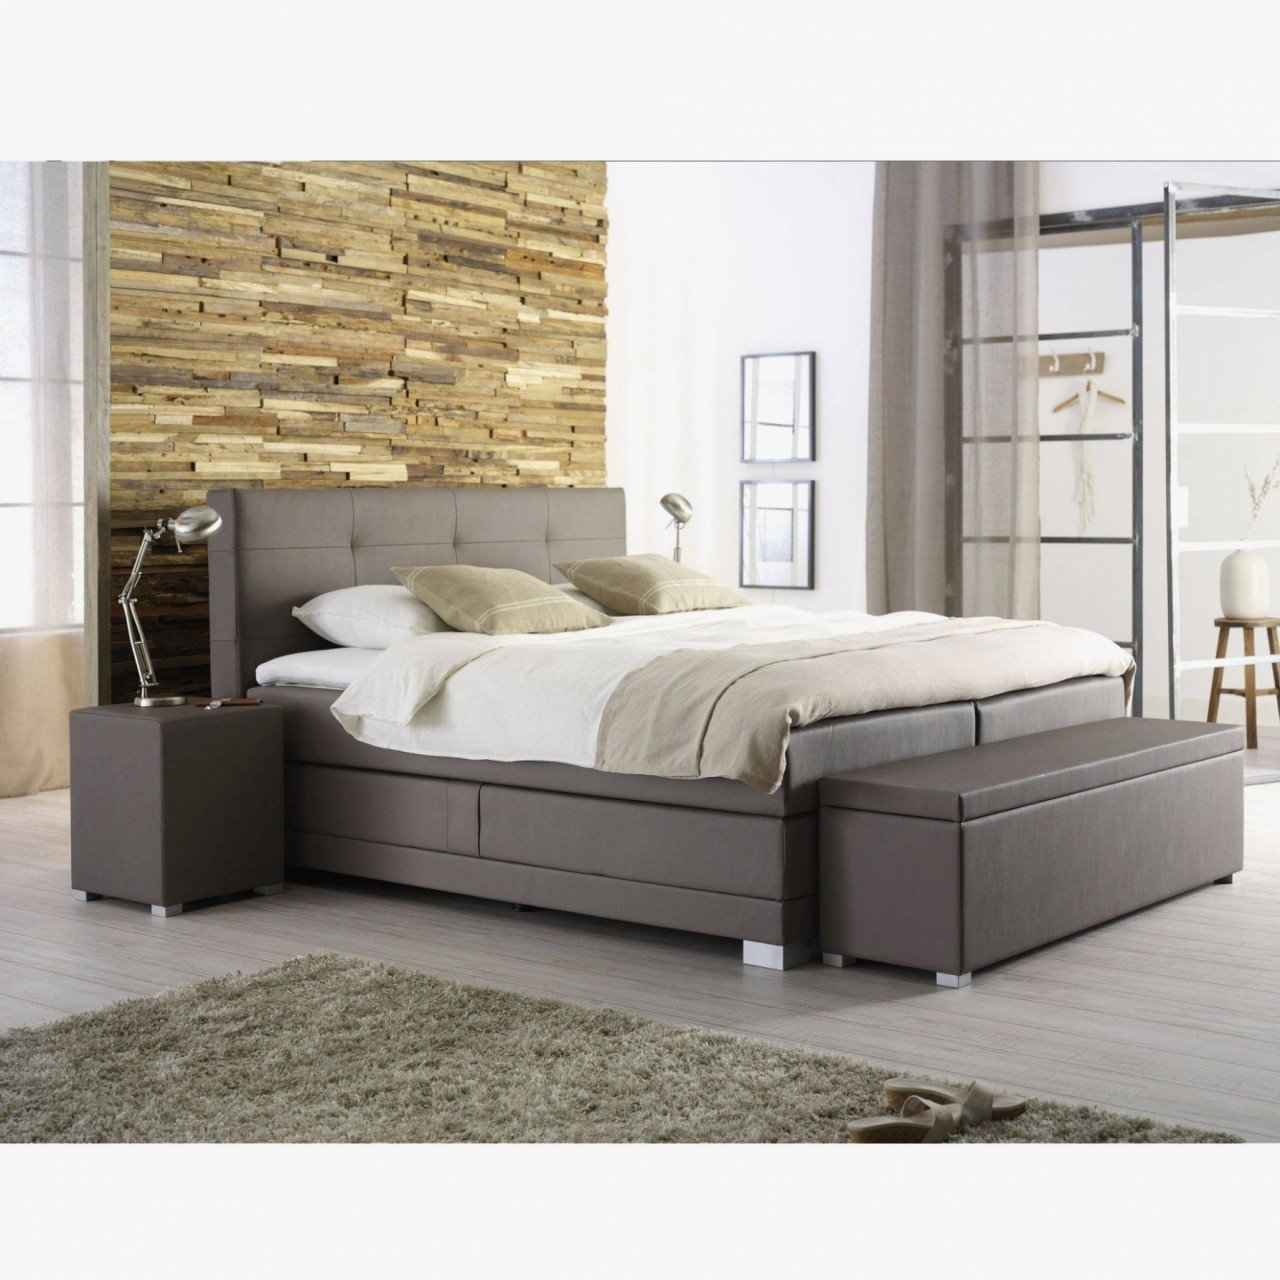 Girls Queen Bedroom Set Unique Bed with Drawers Under — Procura Home Blog